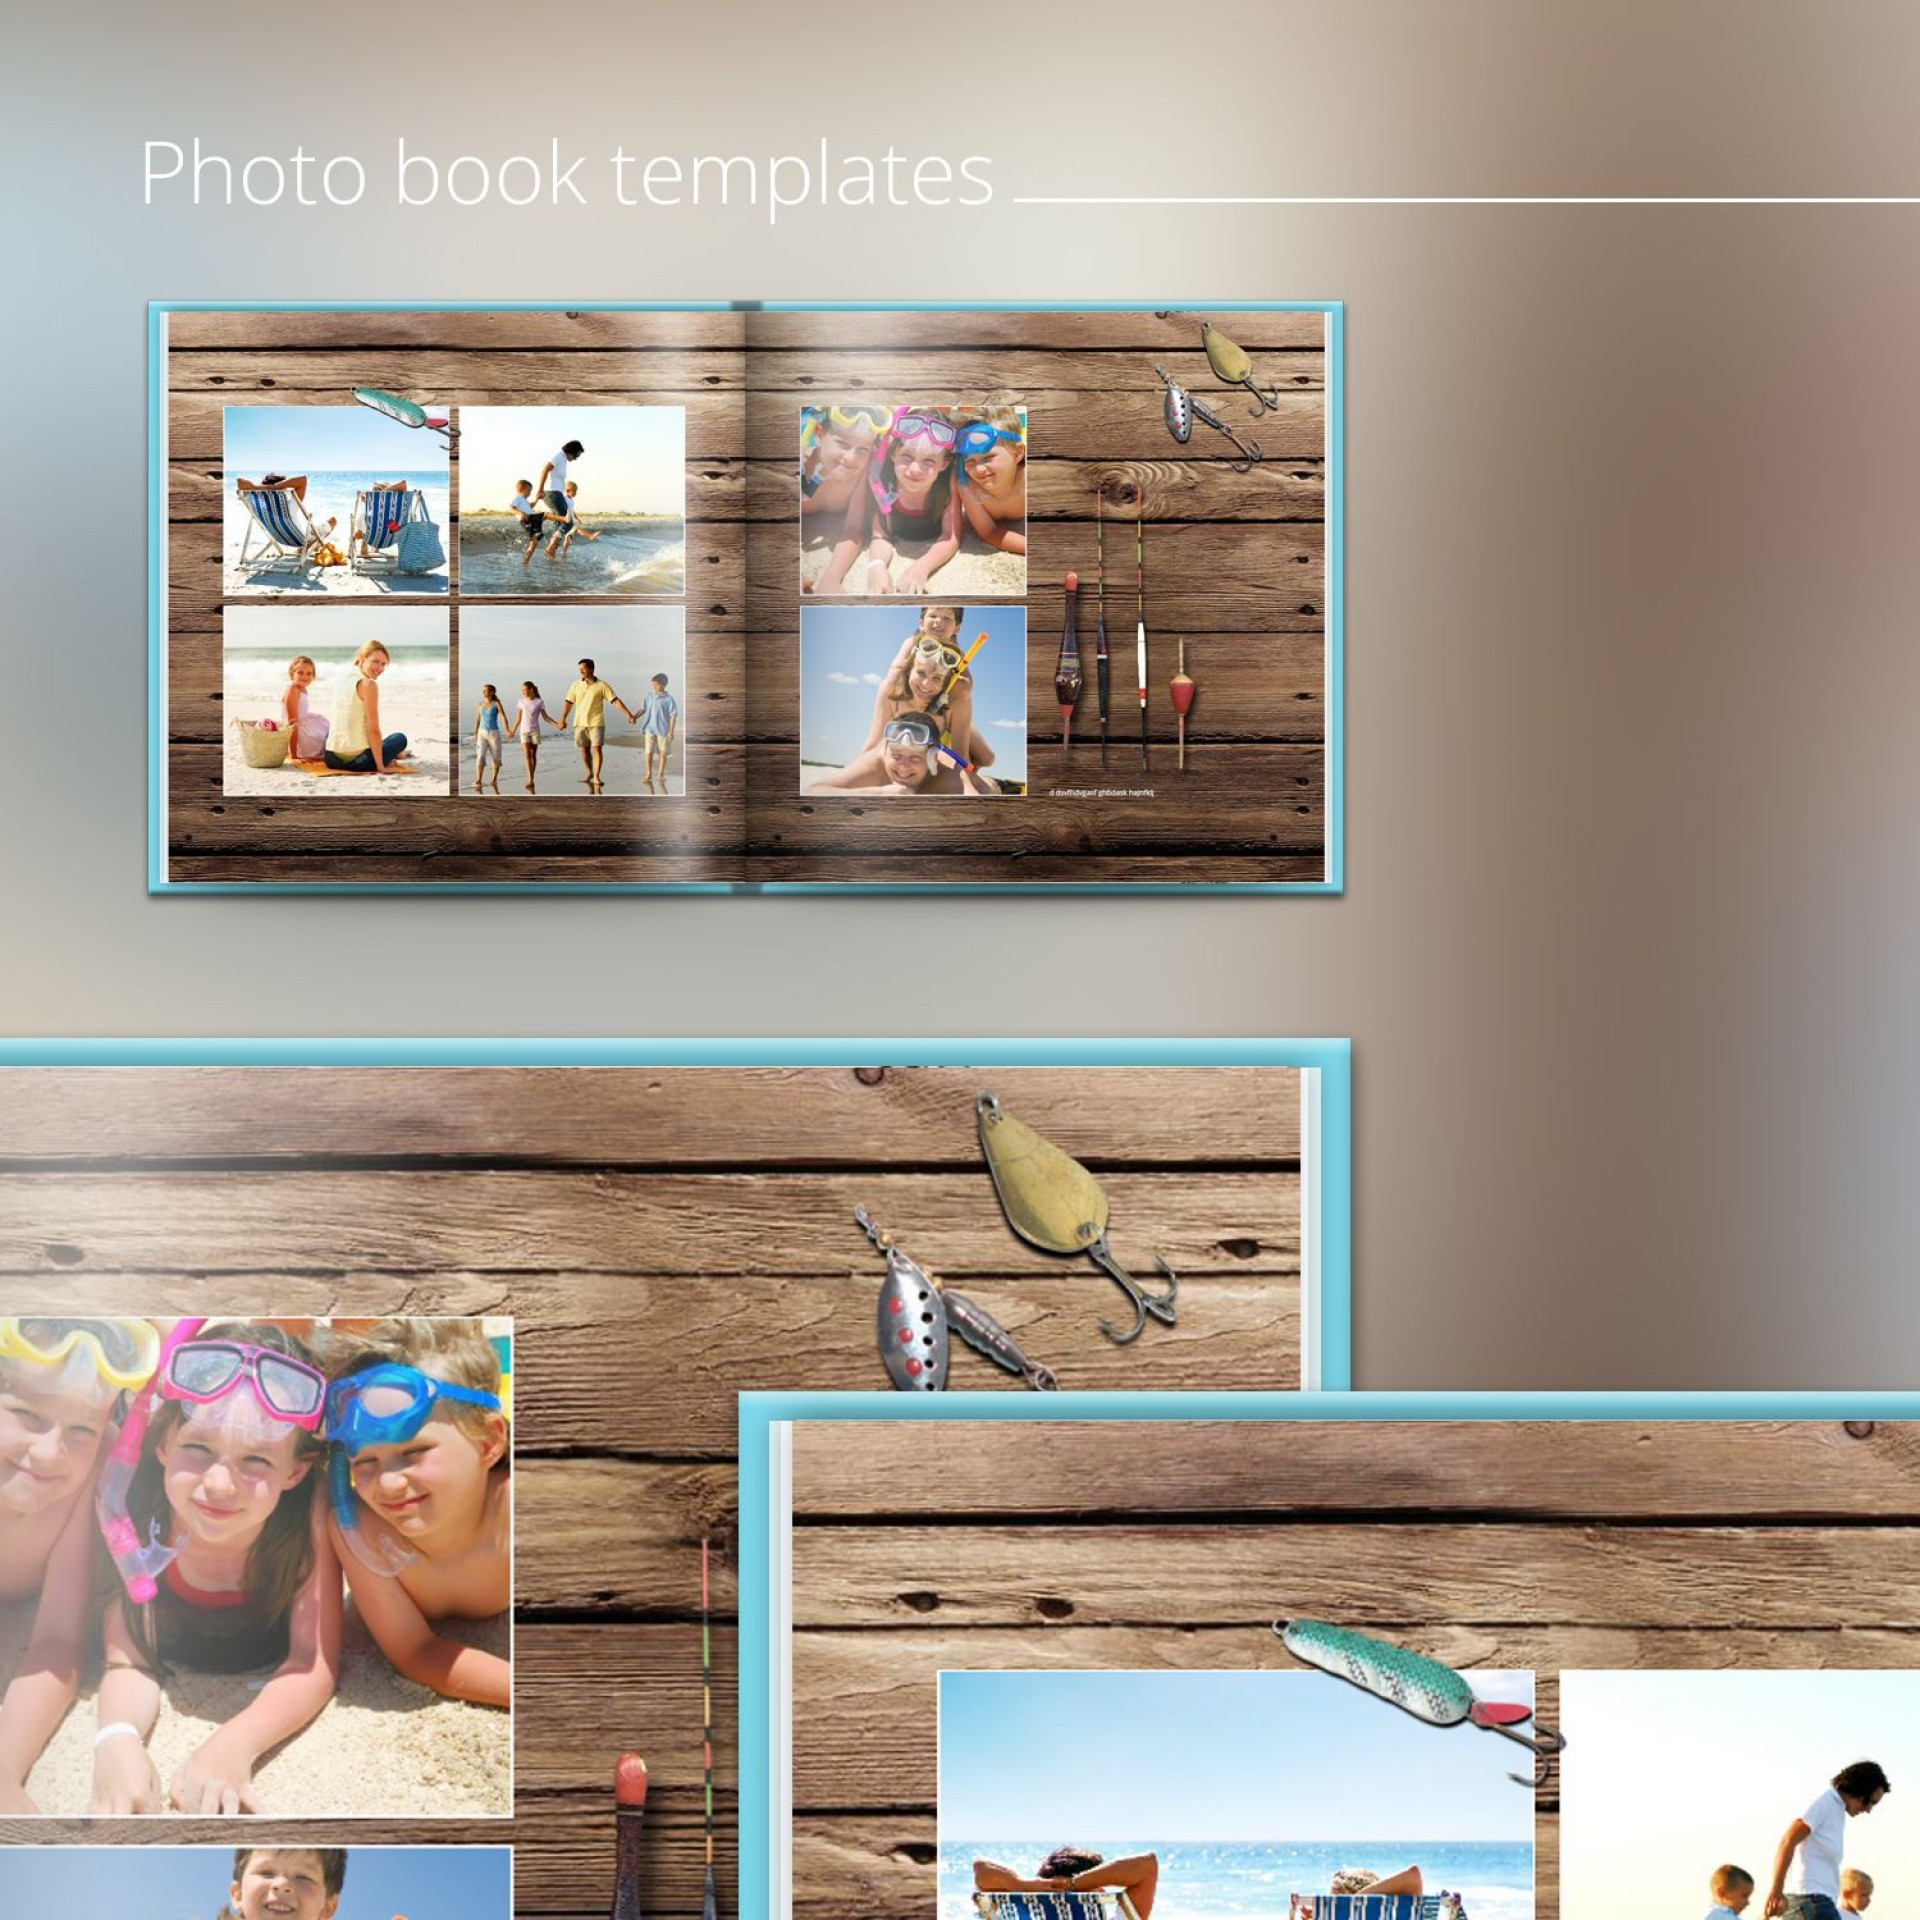 000 Staggering Free Photo Book Template High Resolution  Templates1920